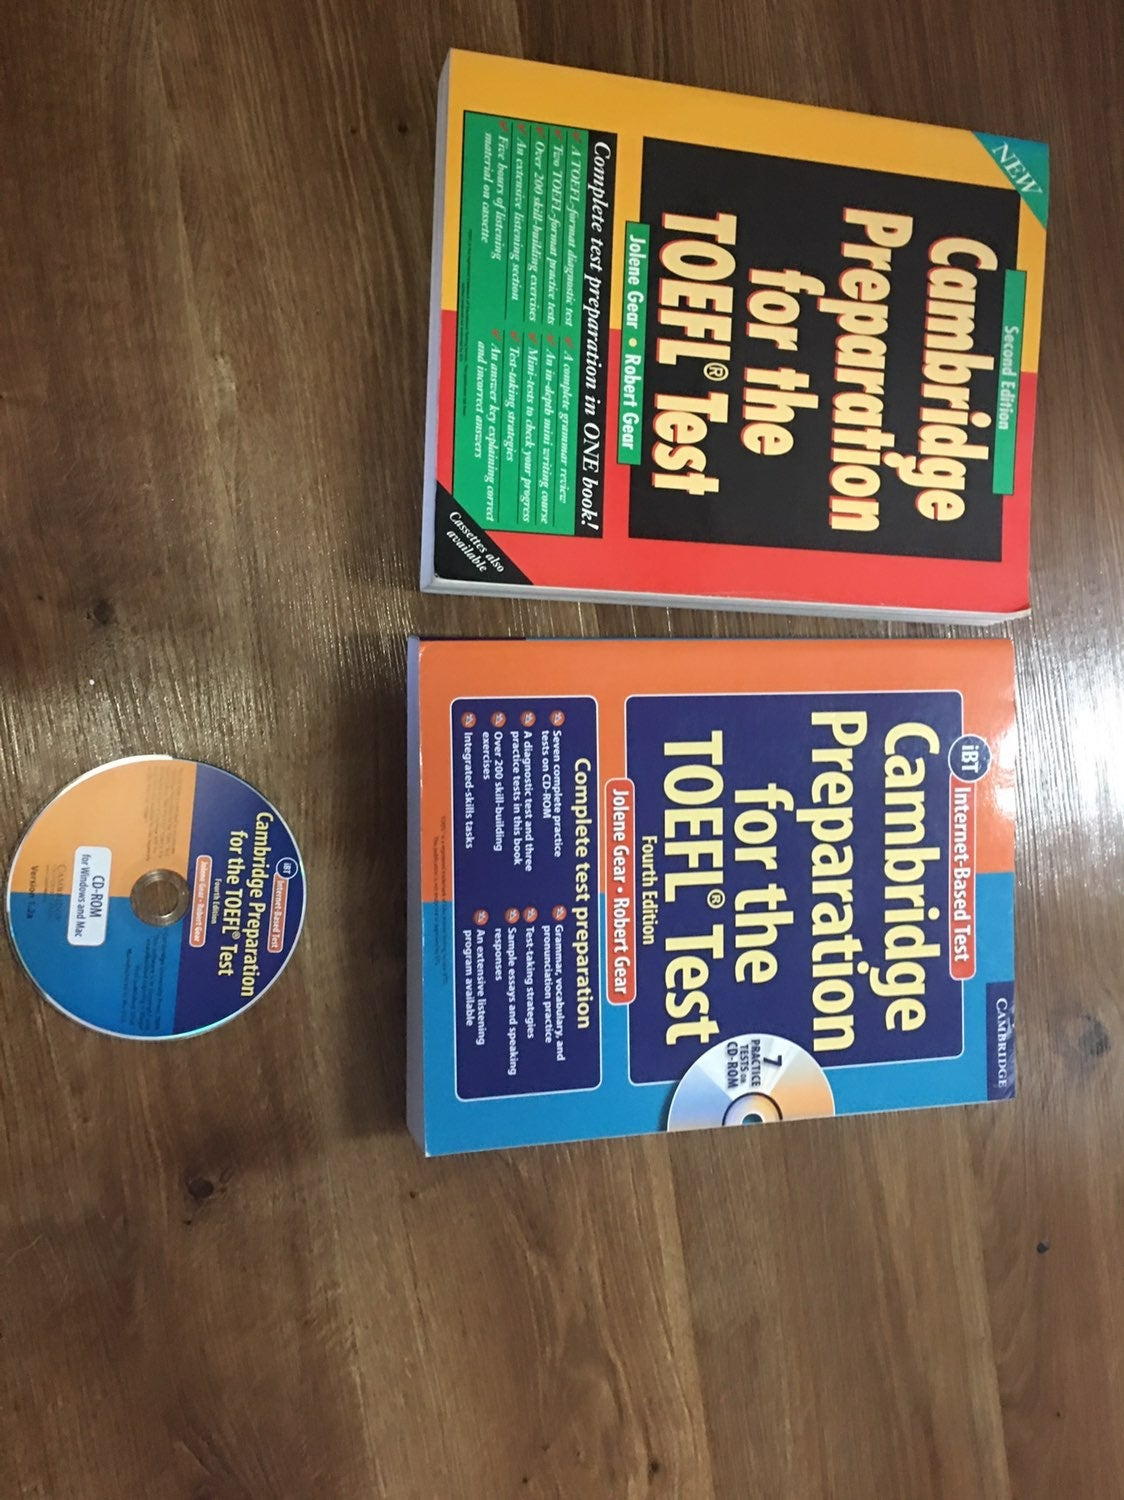 TOEFL IBT preparation books and cd